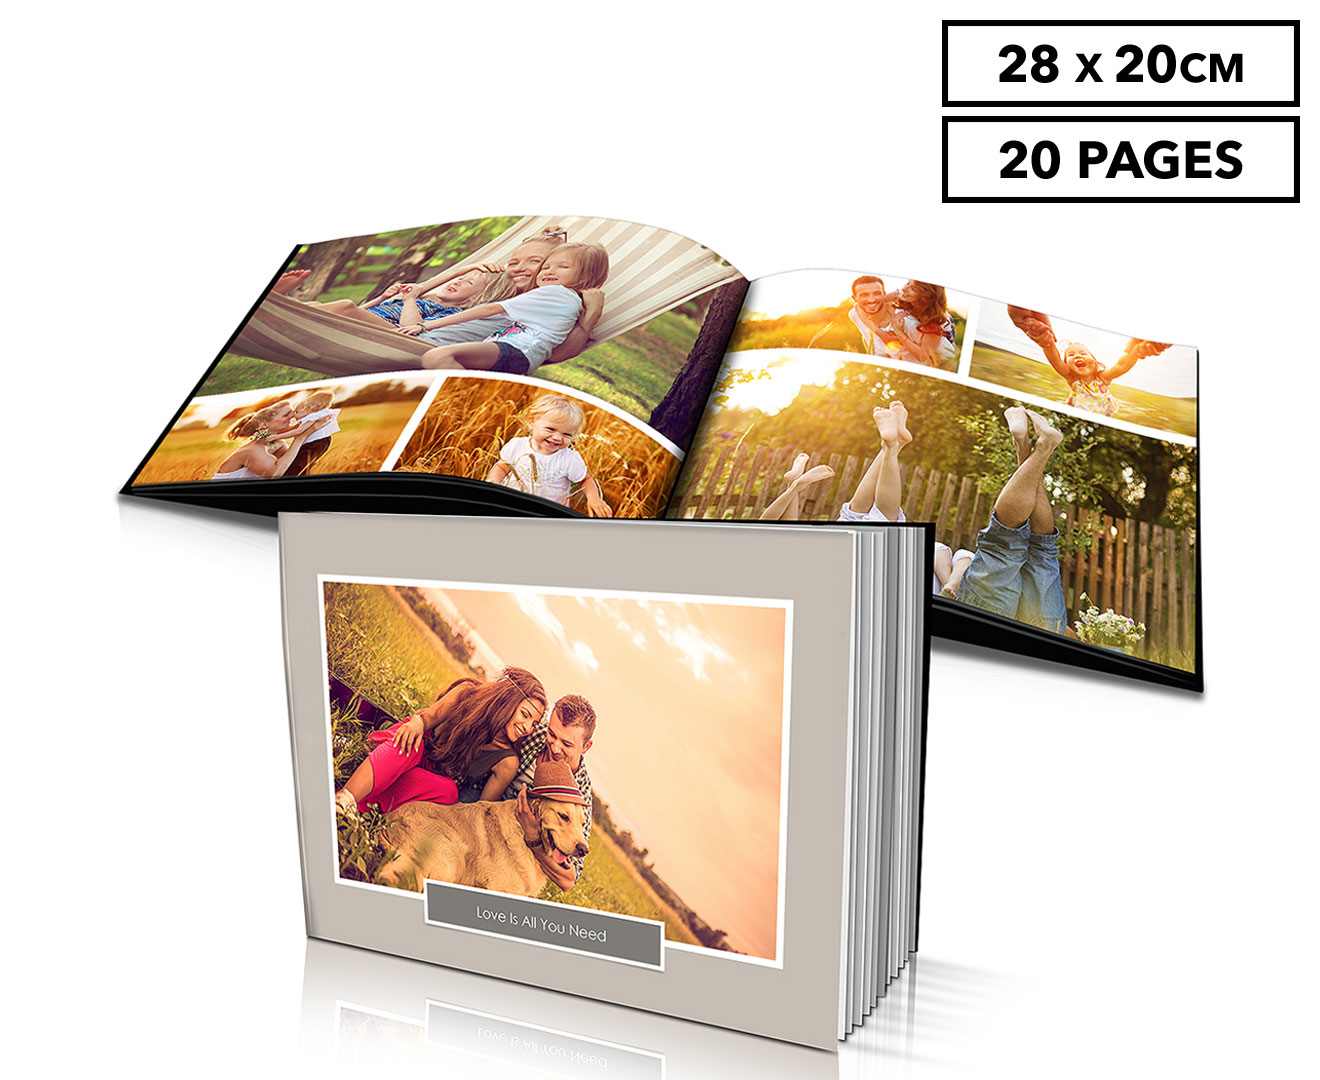 Personalised 28x20cm Hard Cover Photo Book - 20 Pages ...